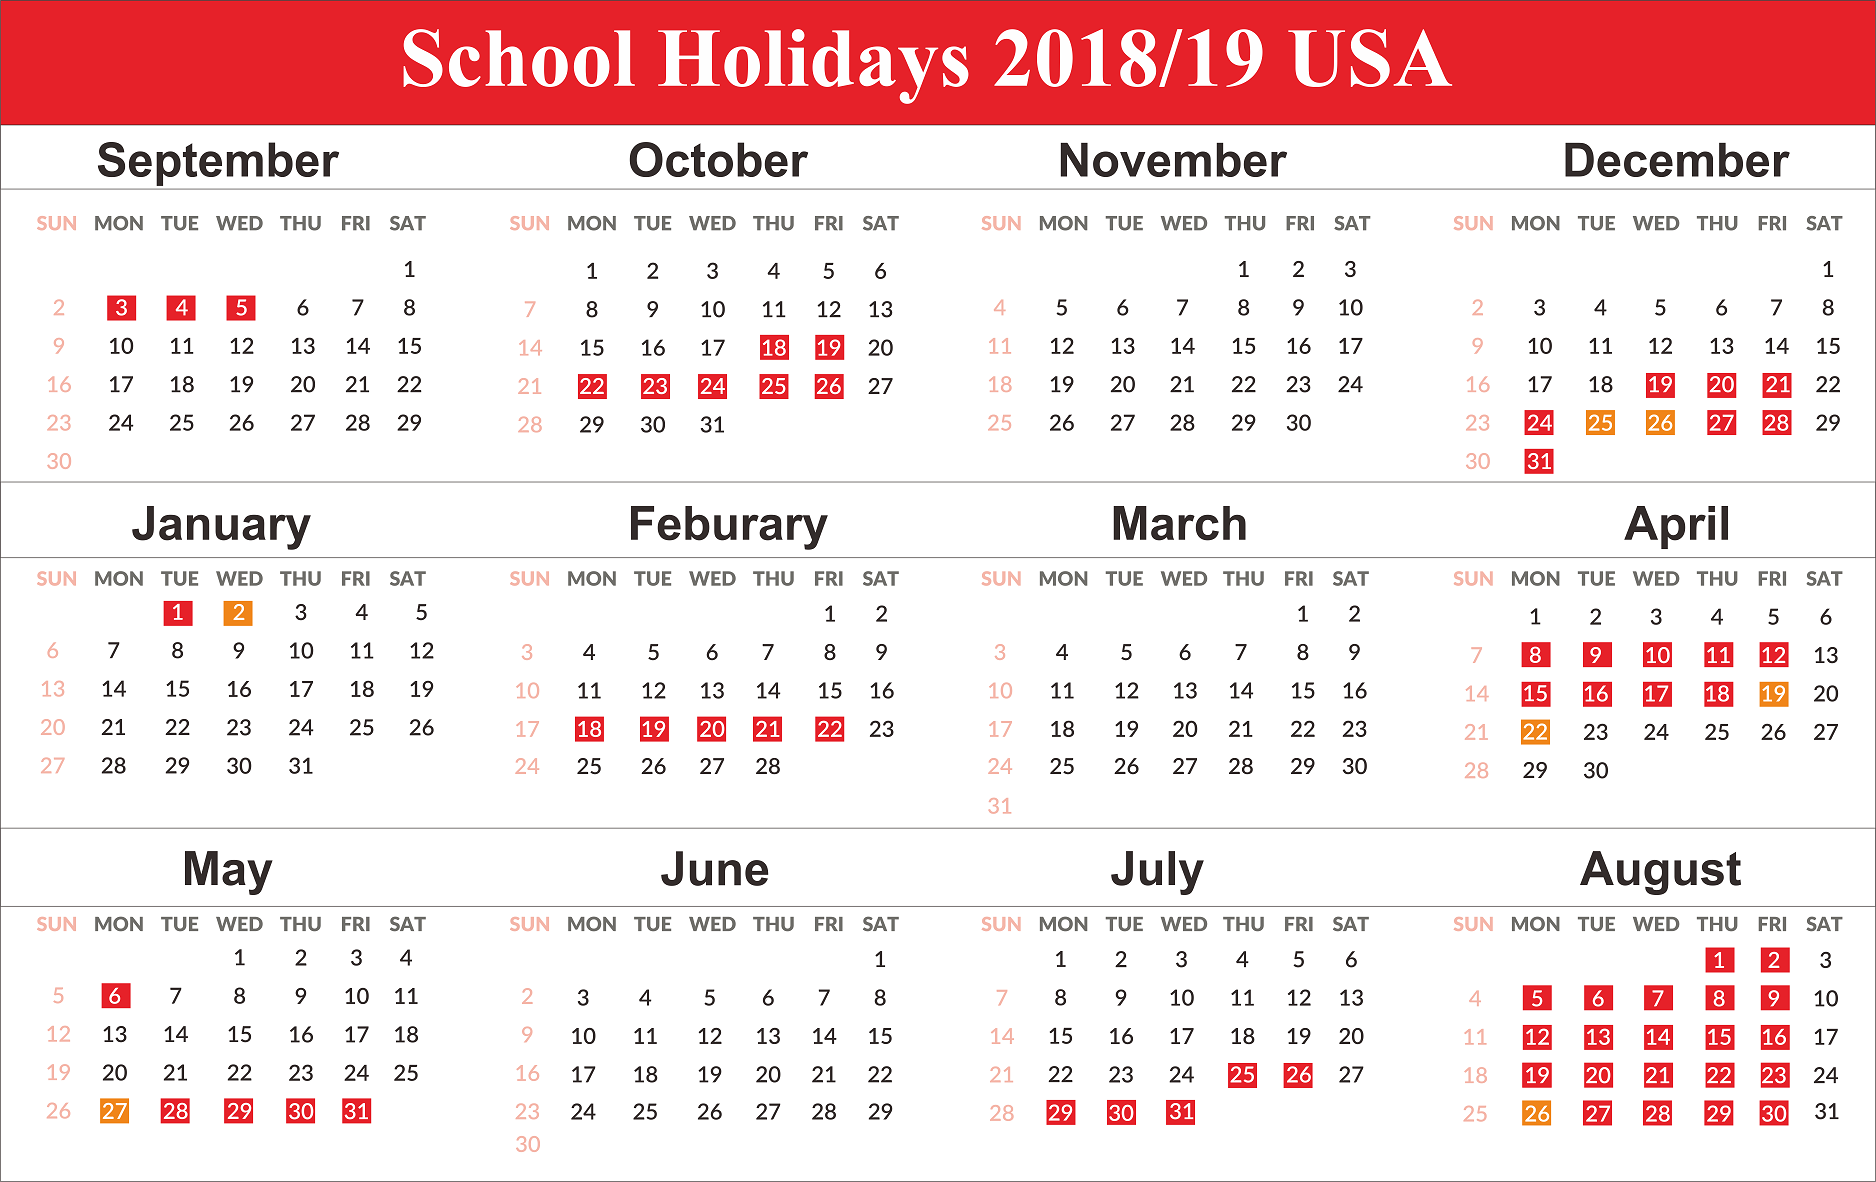 School Holidays 2019 For Usa School Holiday Calendar School Calendar School Holidays